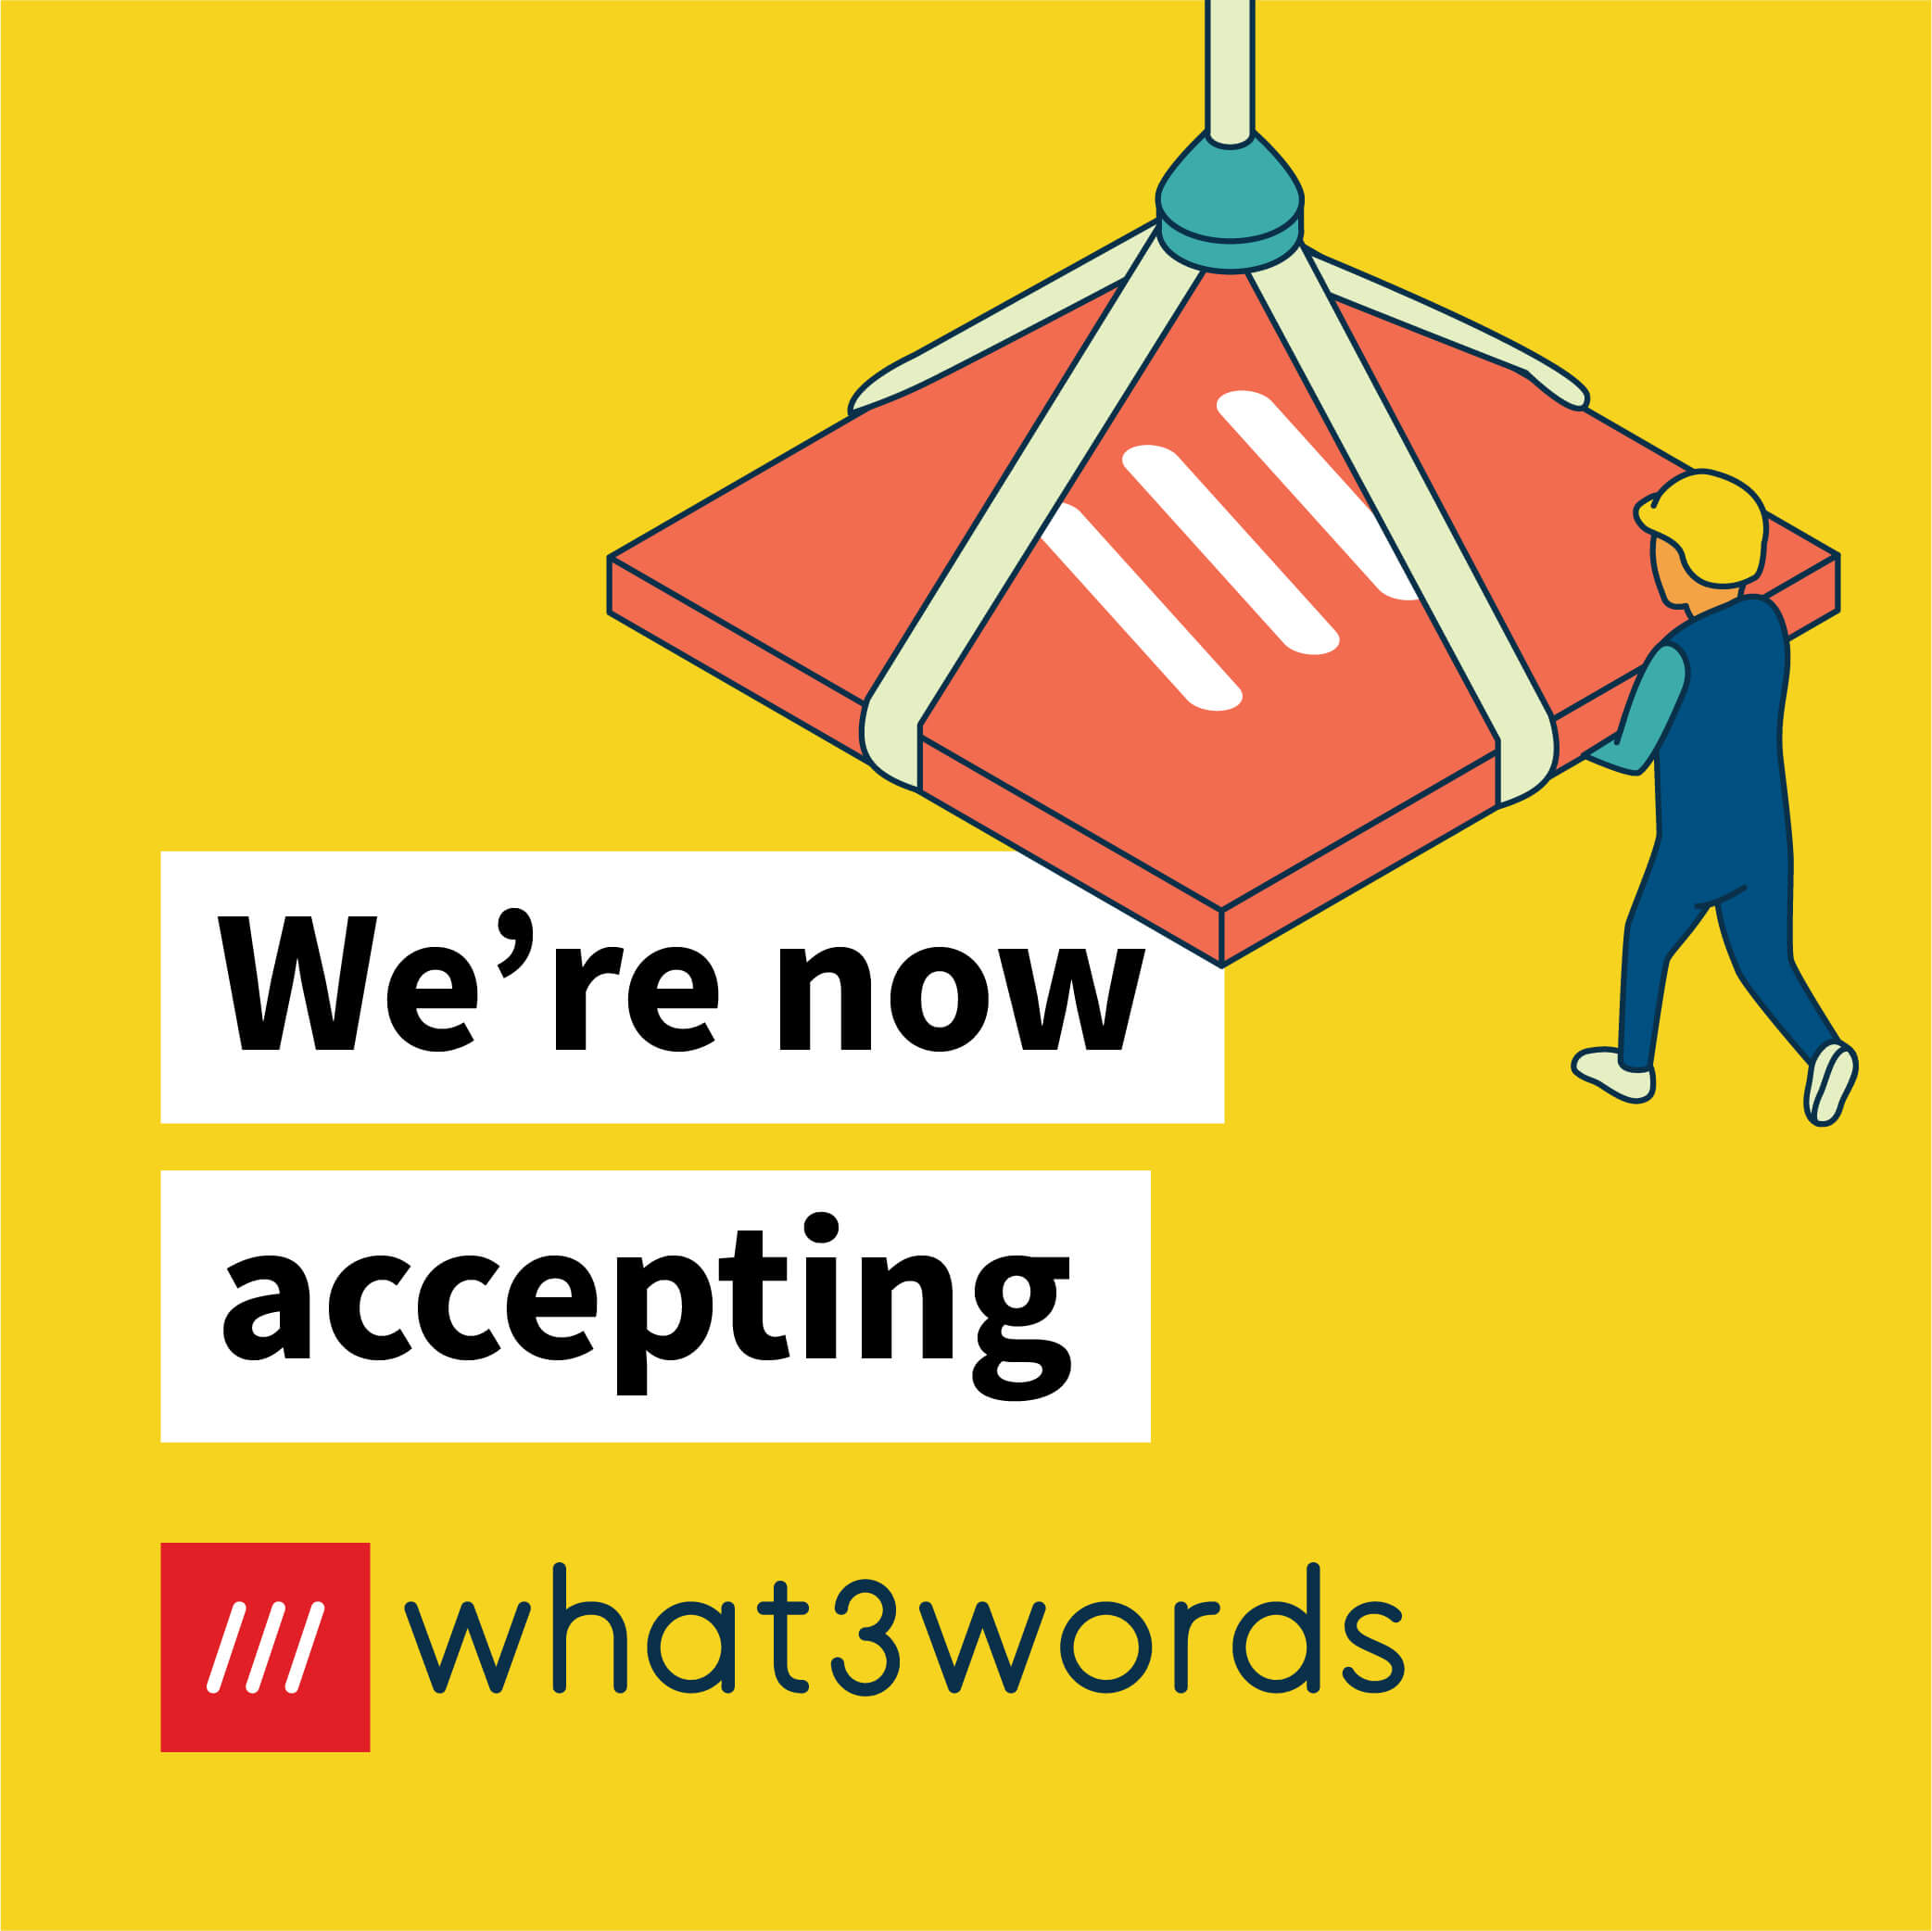 Now accepting what3words social post for GIS and infrastructure - yellow